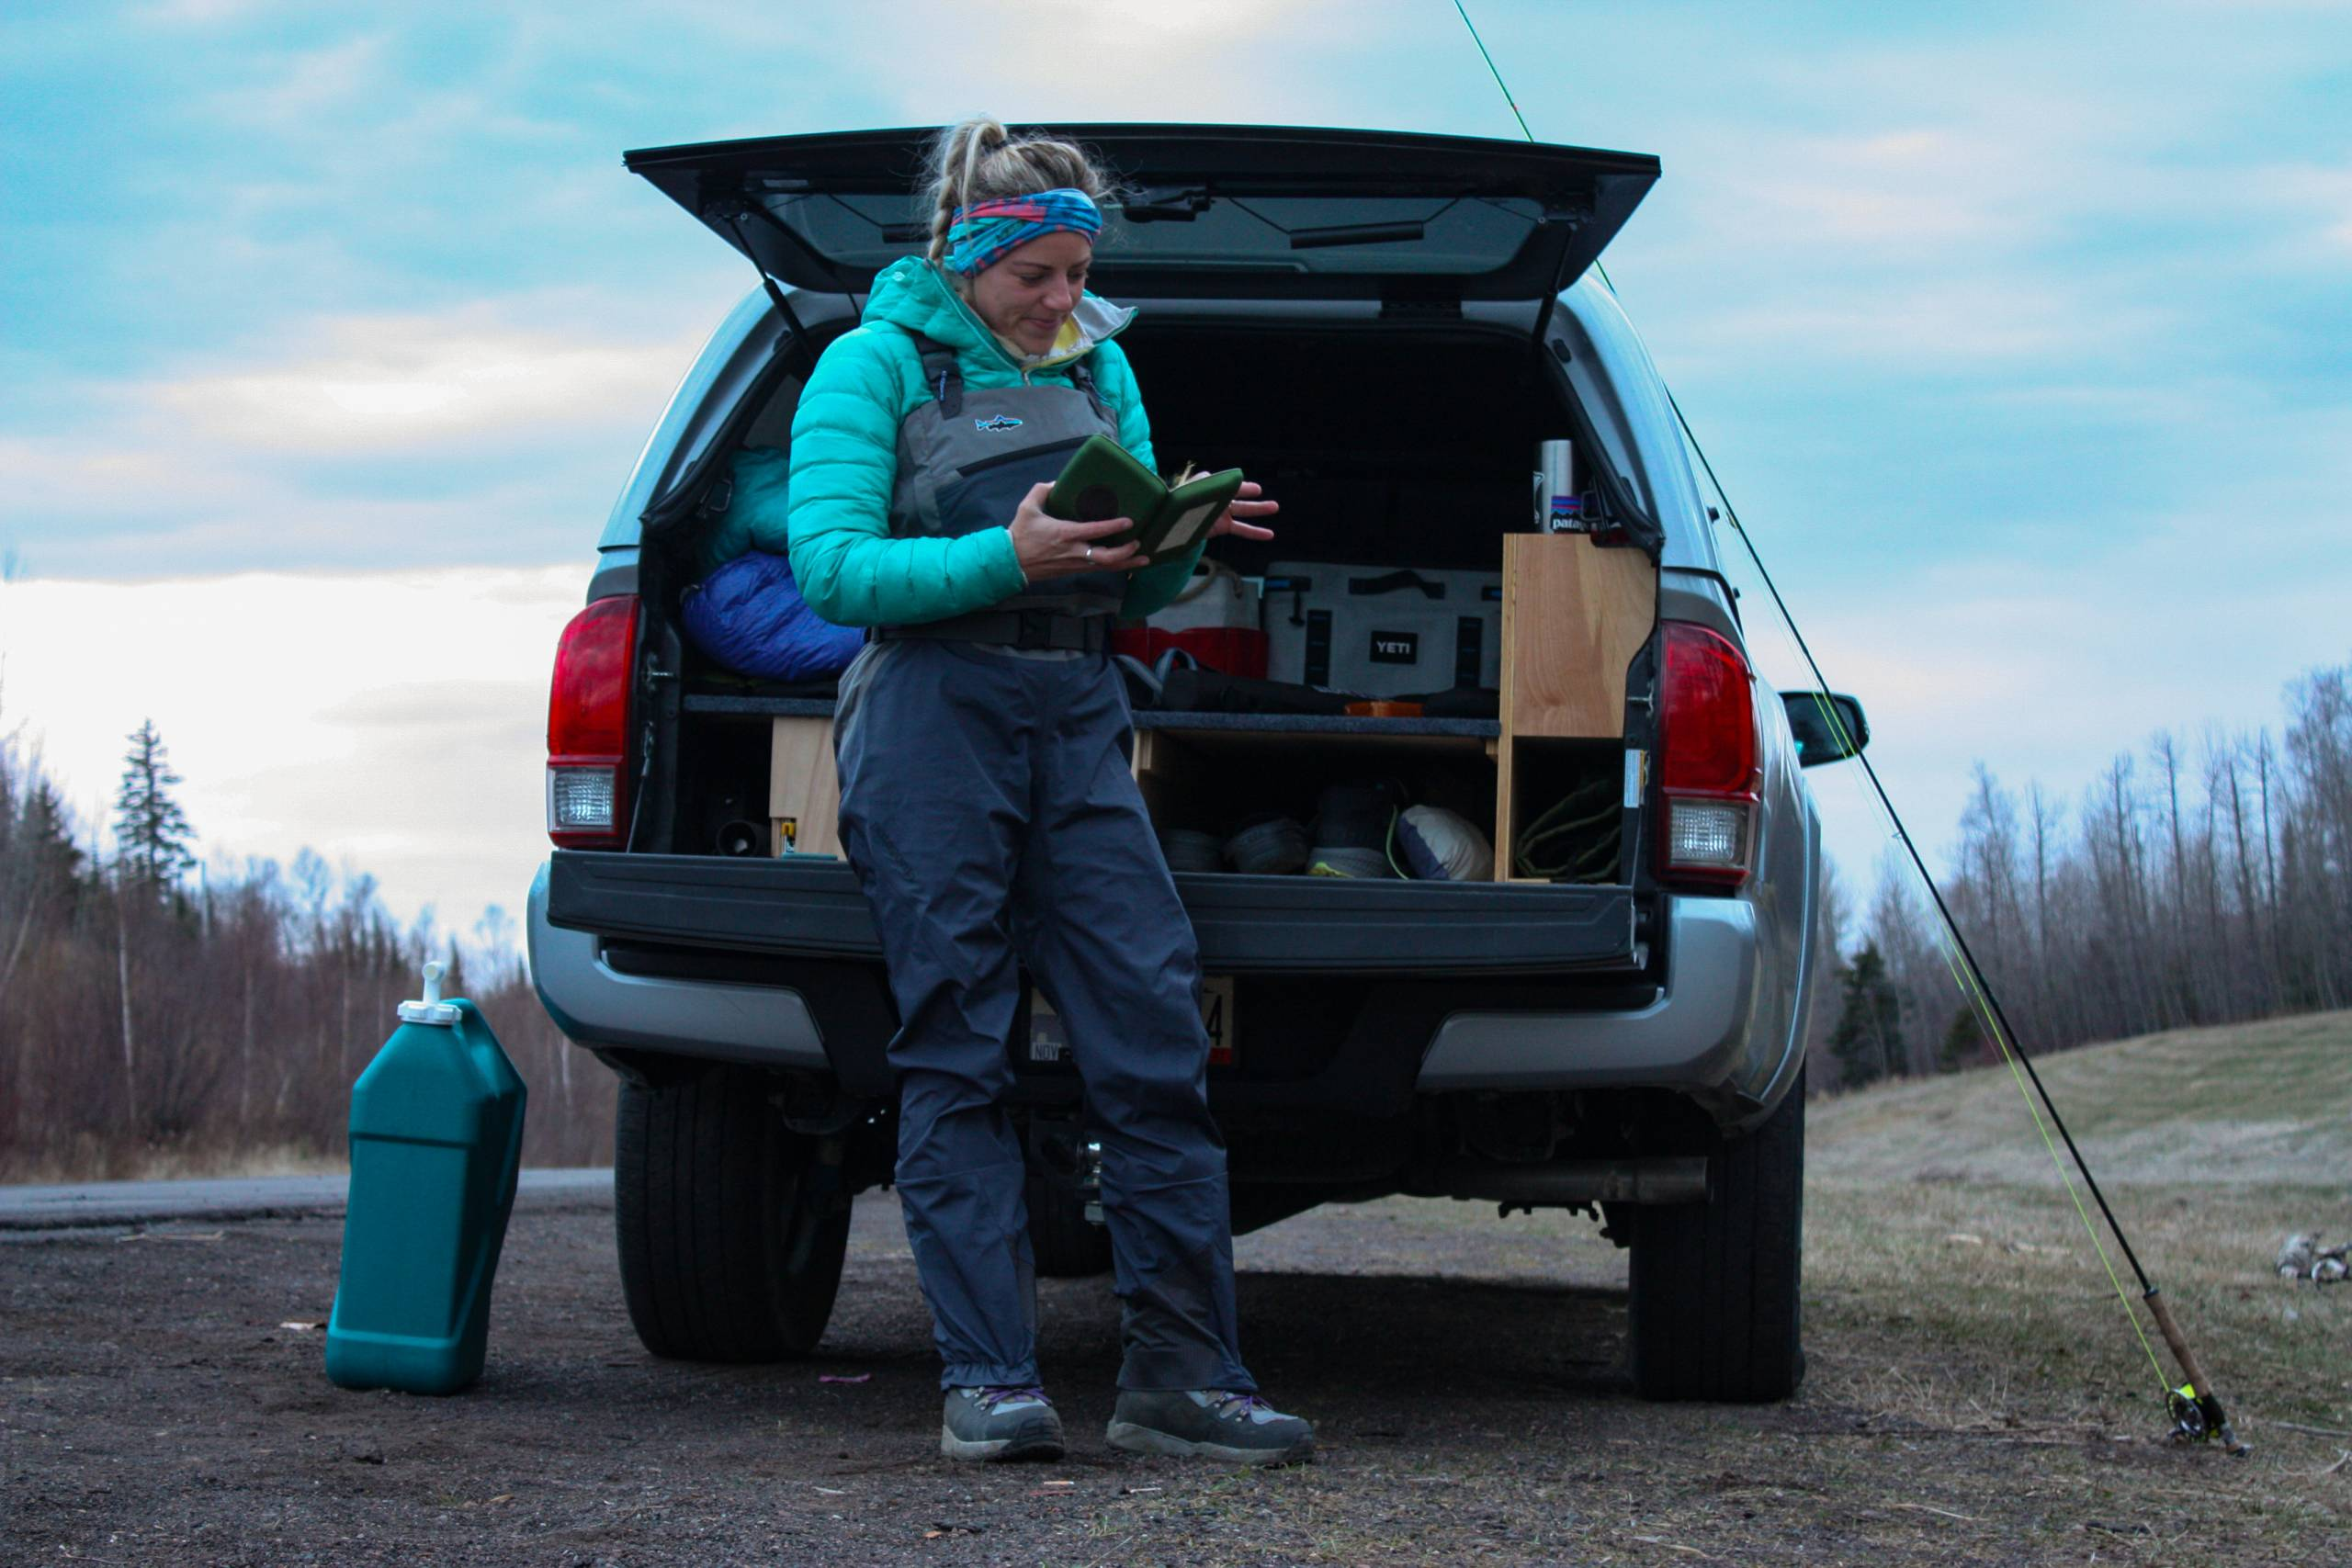 Girl flyfishing in Patagonia Swiftcurrent Waders Lifestyle